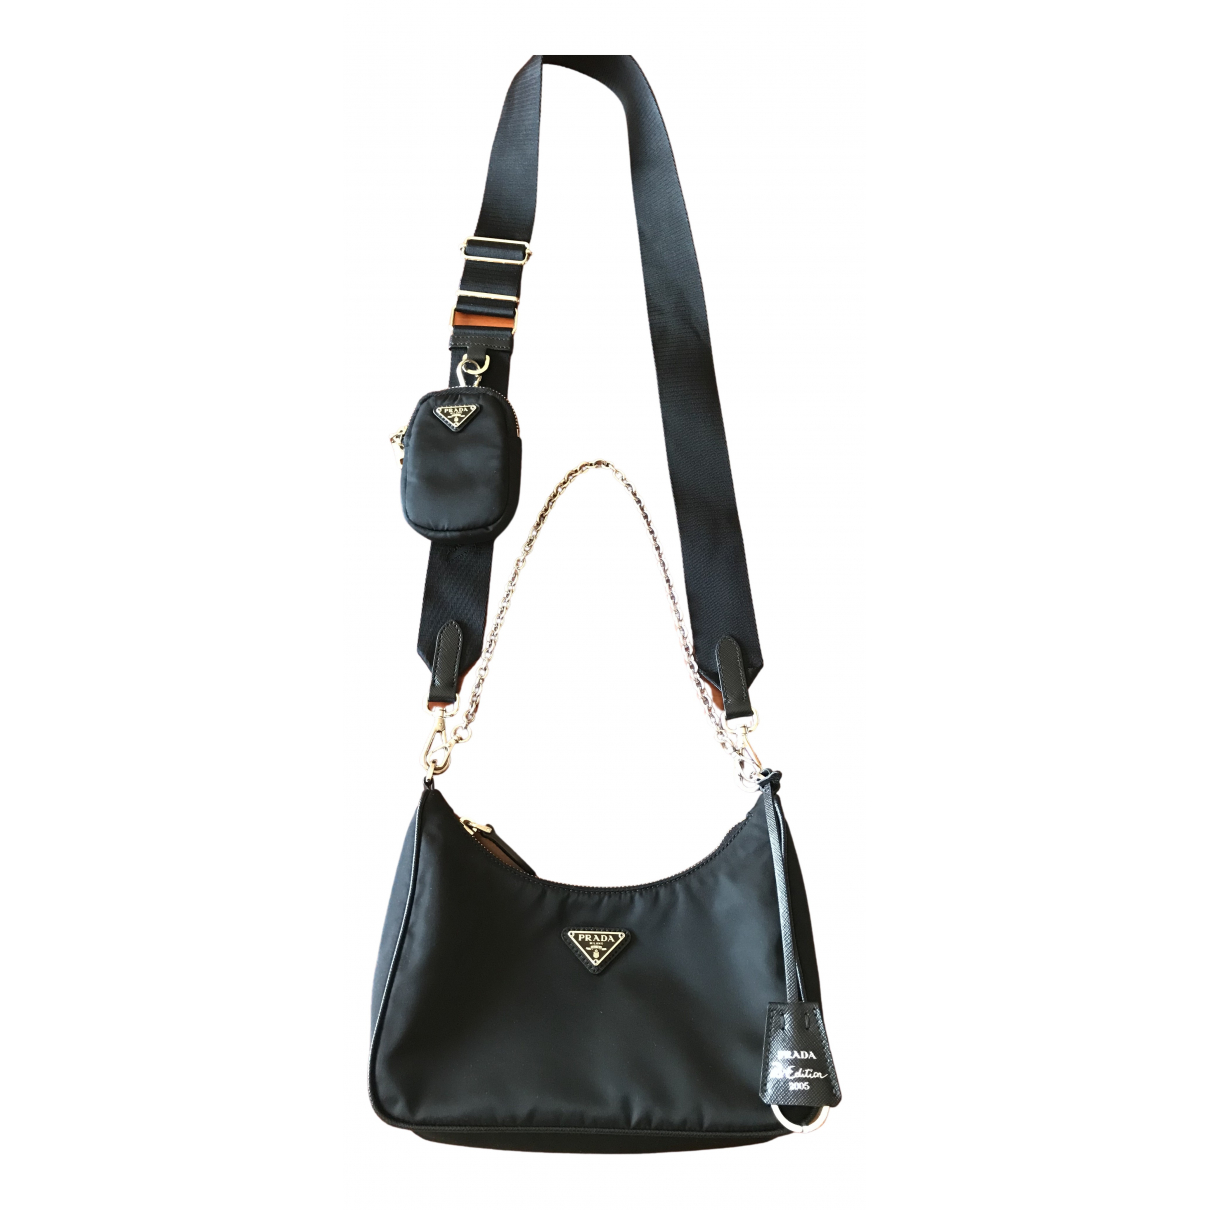 Prada Re-edition Handtasche in  Schwarz Leinen